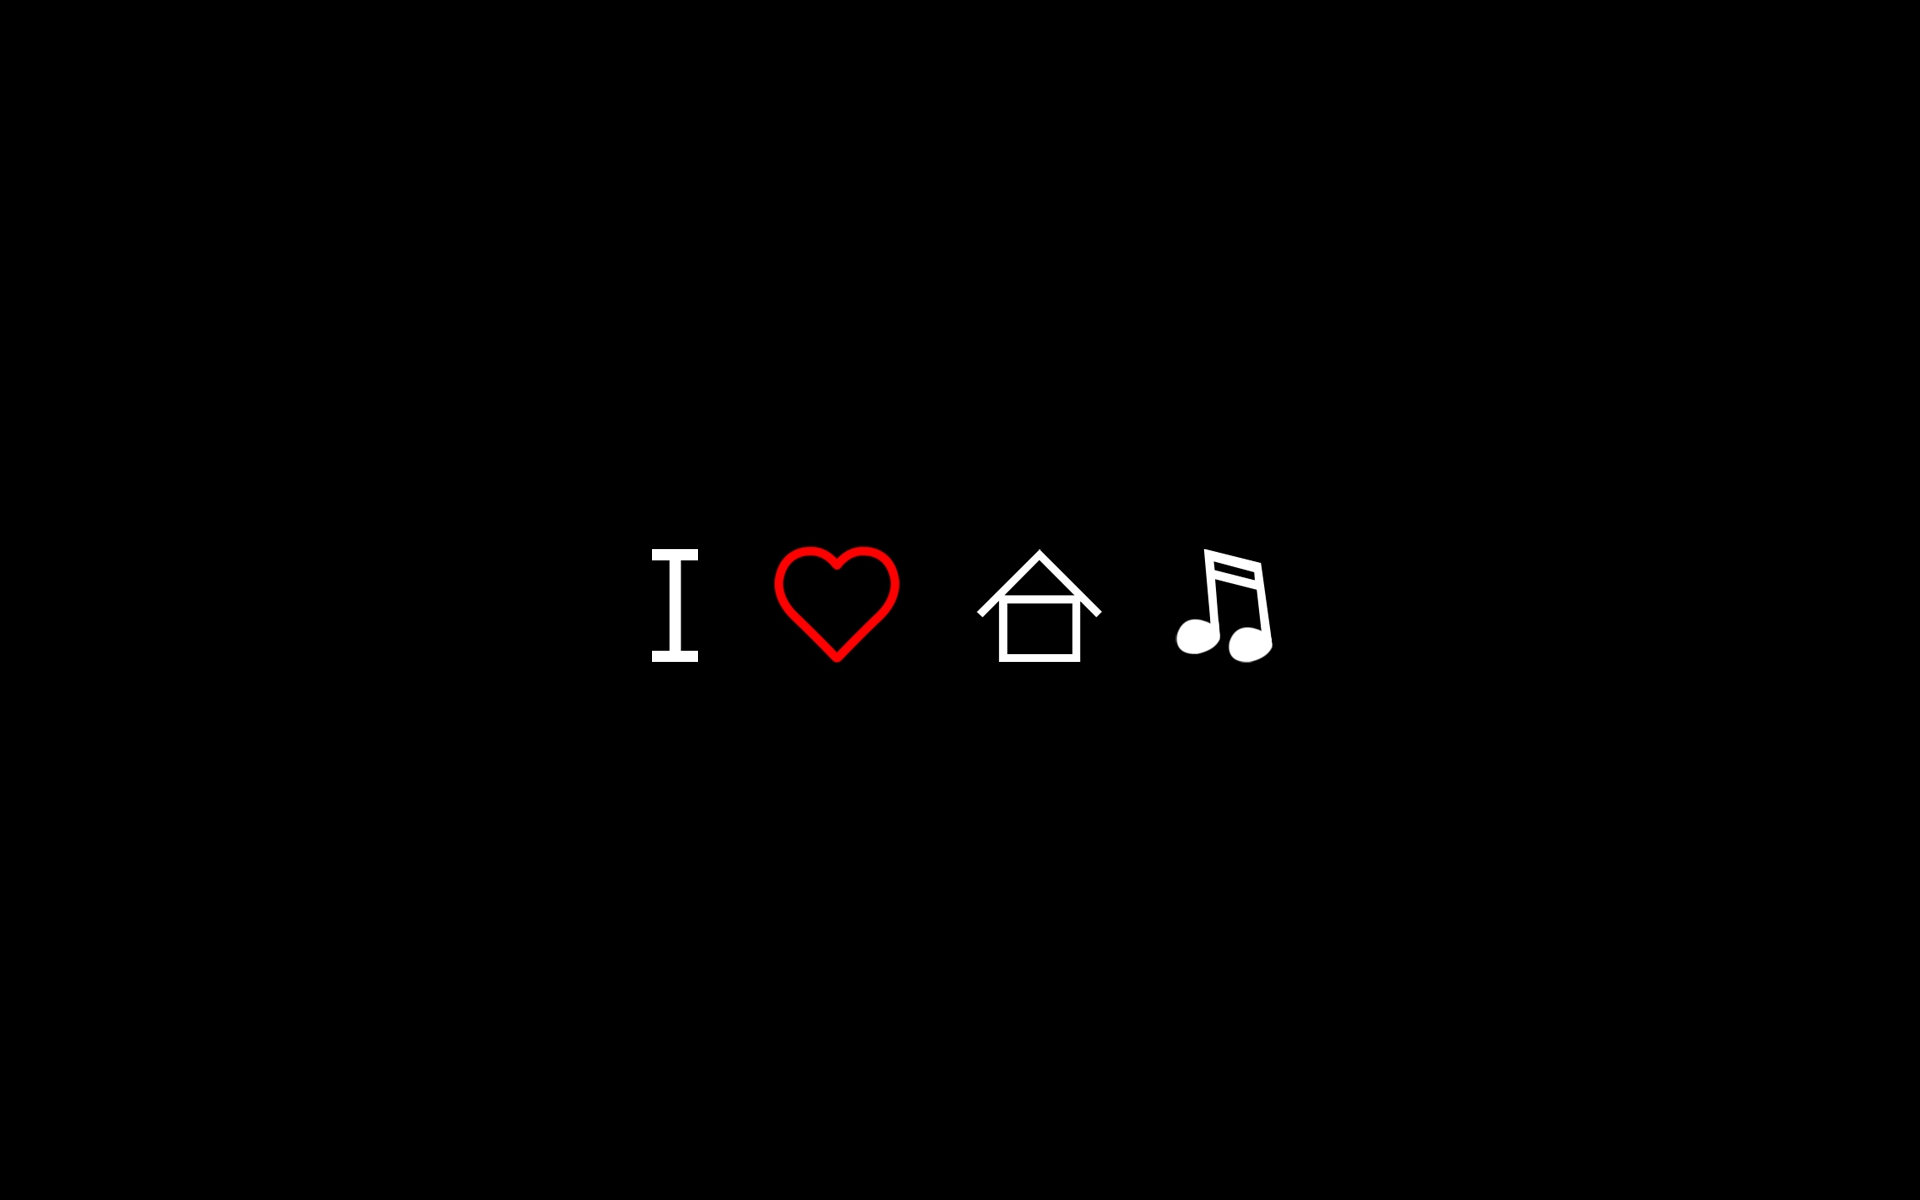 Love minimalistic music hearts house music black for I love house music